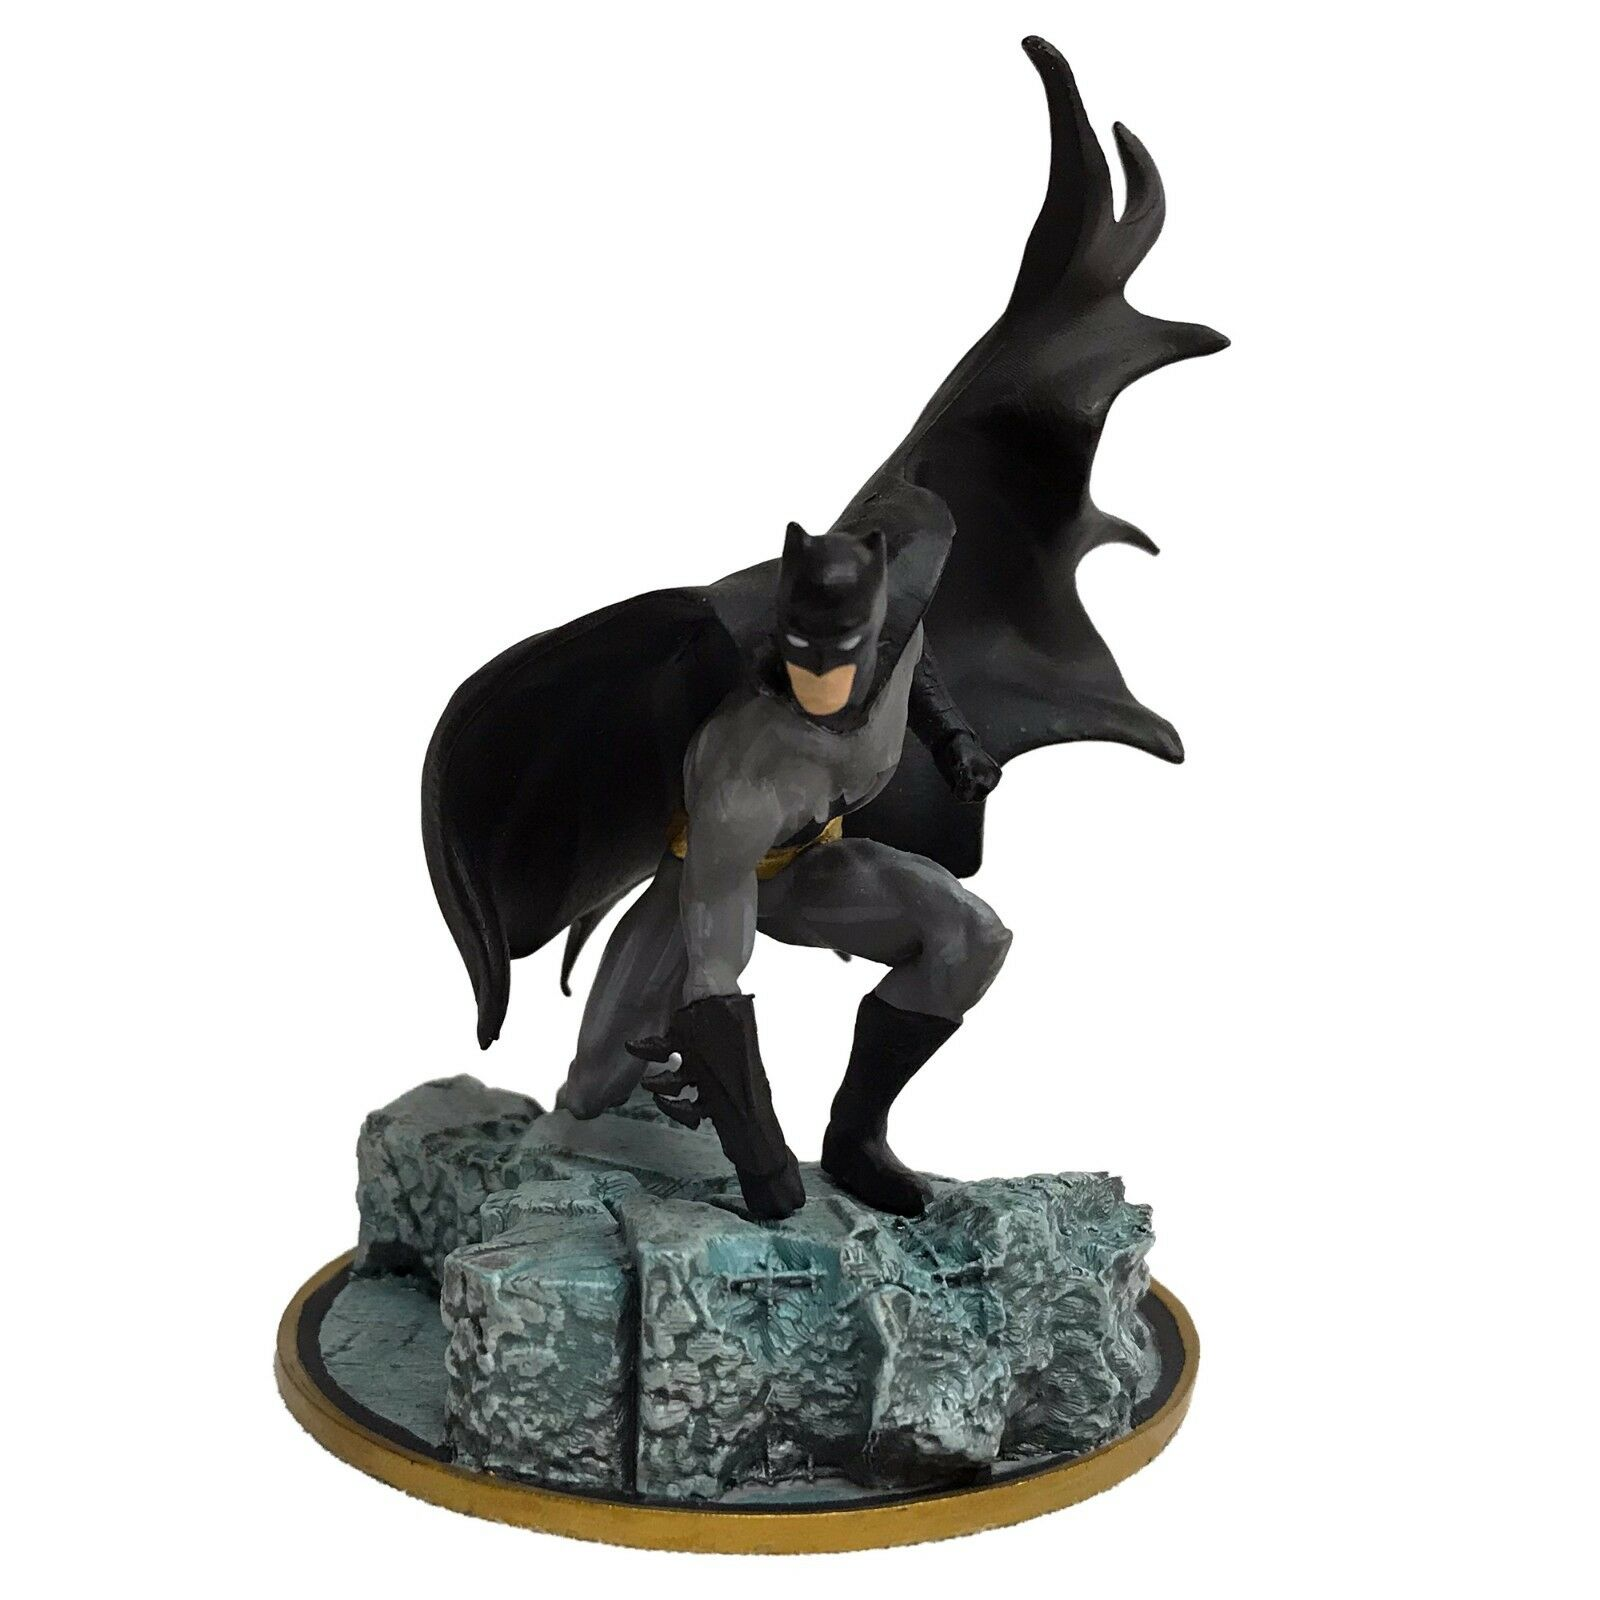 Batman schwermetalle 2018 comic - con sdcc exklusiven mini - statue in dc neue